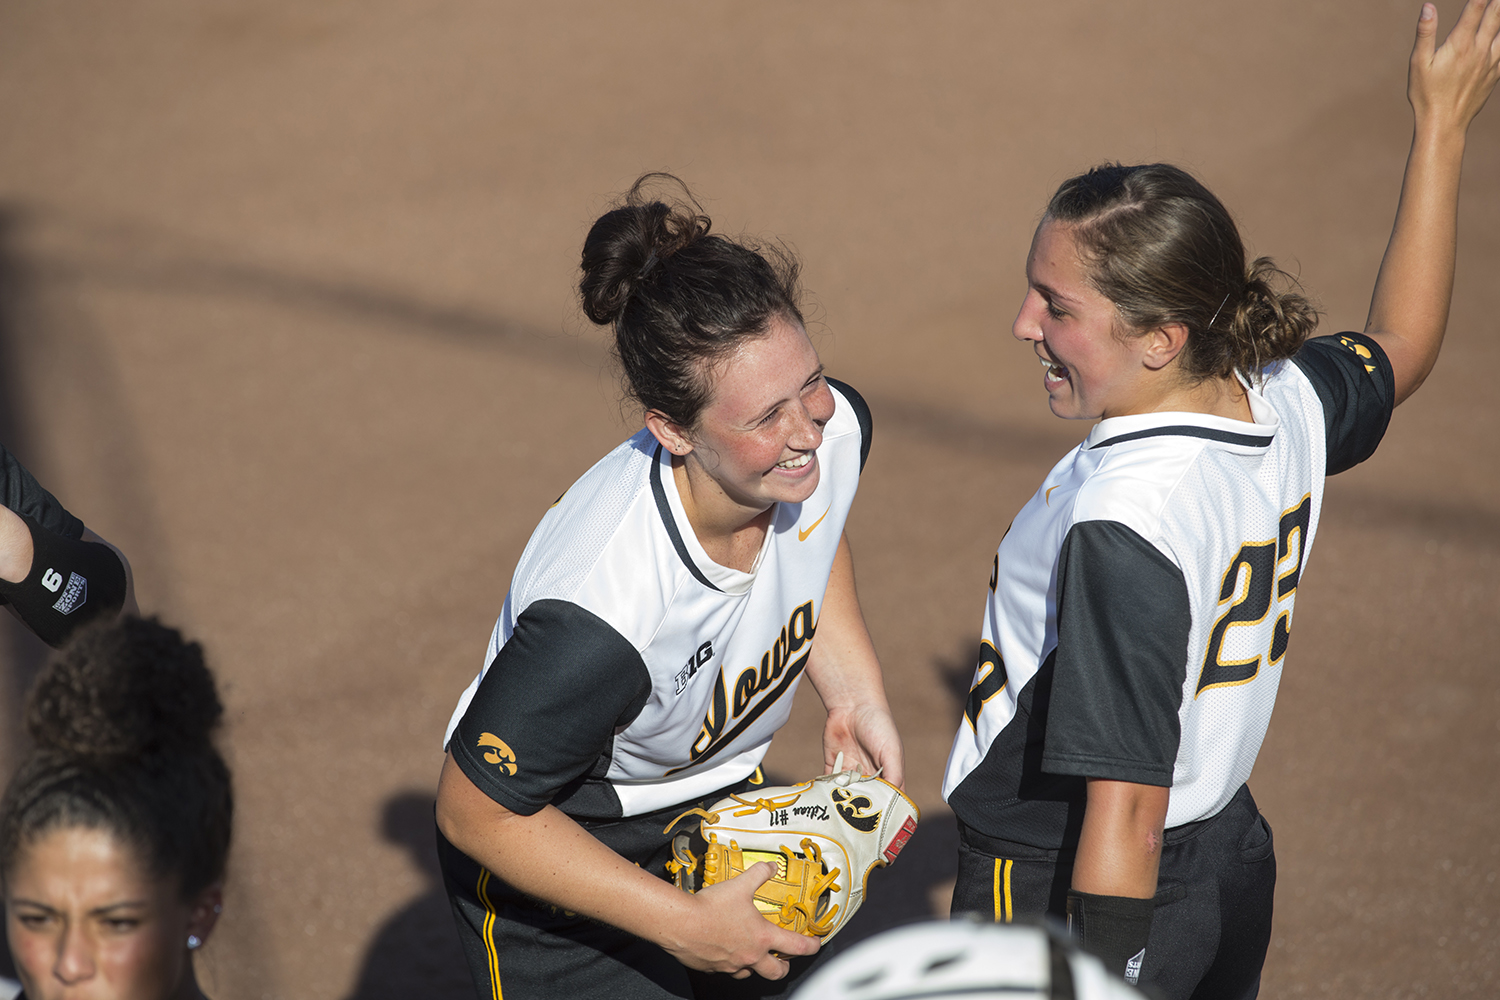 Senior Mallory Kilian and junior Alex Rath joke around during the Iowa v Kirkwood softball game at the Pearl Softball Complex in Coralville on Sept. 14, 2018. The Hawkeyes defeated the Kirkwood Eagles 10-6.